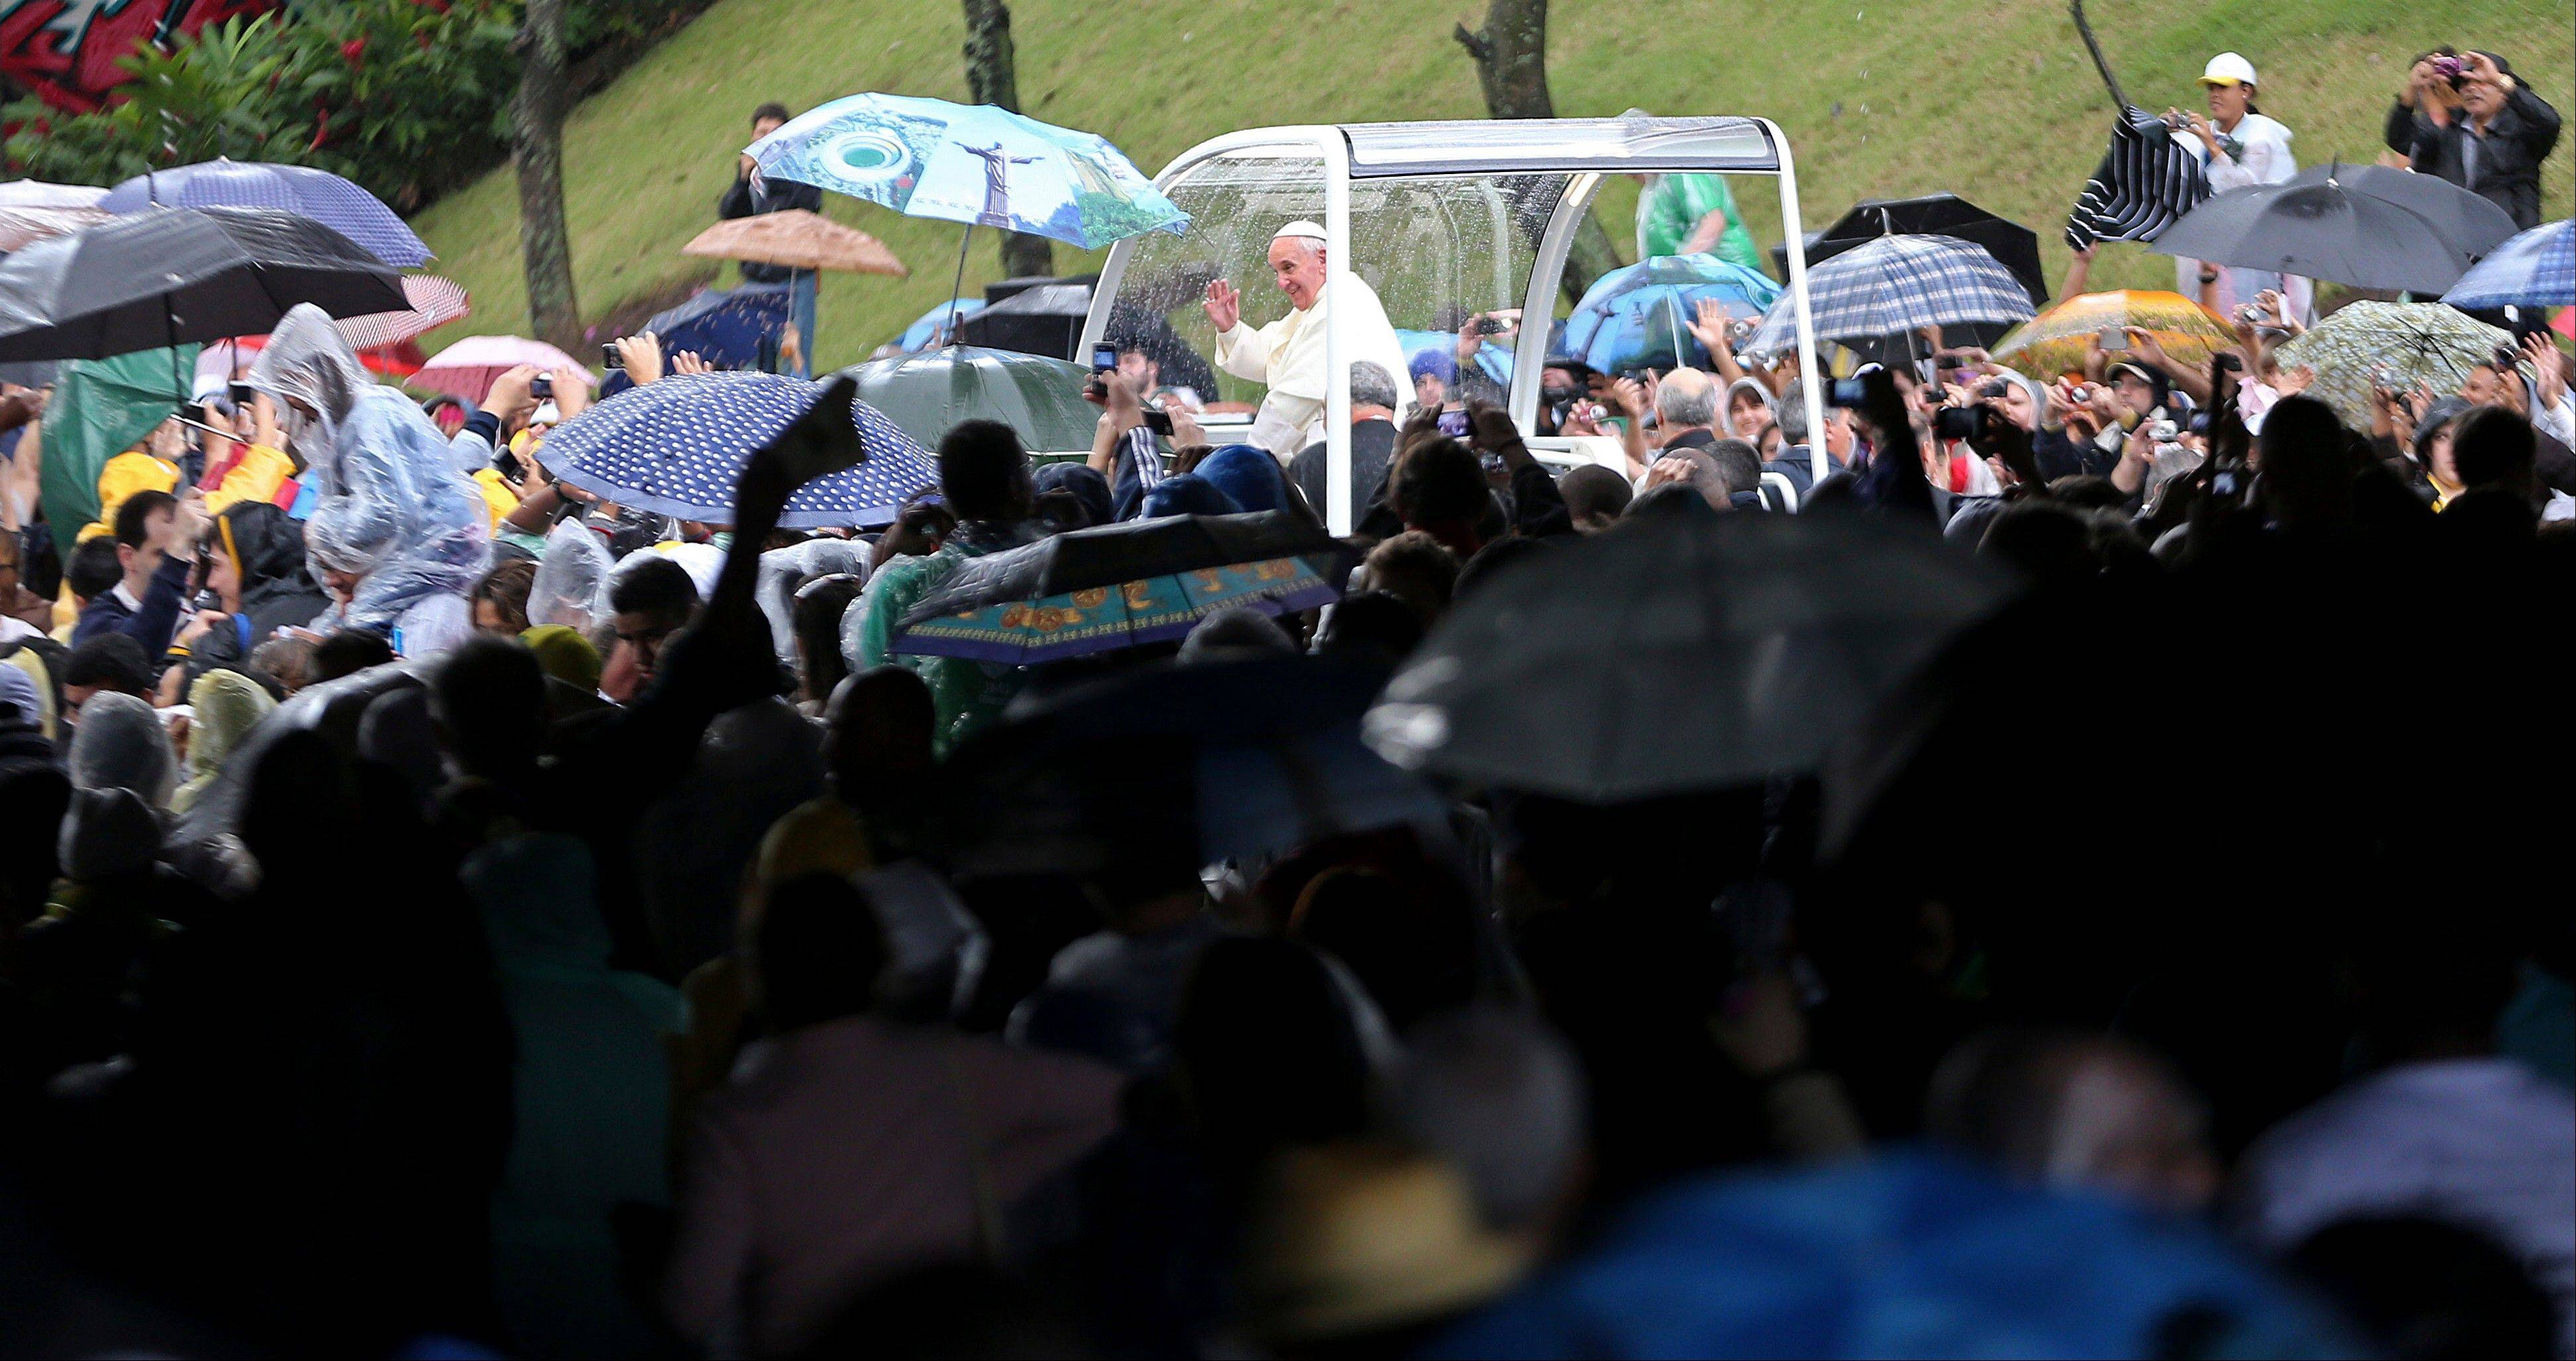 Associated PressPope Francis waves to people from his popemobile in Rio de Janeiro on Saturday, July 27. Pope Francis on Saturday challenged bishops from around the world to get out of their churches and preach, and to have the courage to go to the farthest margins of society to find the faithful.